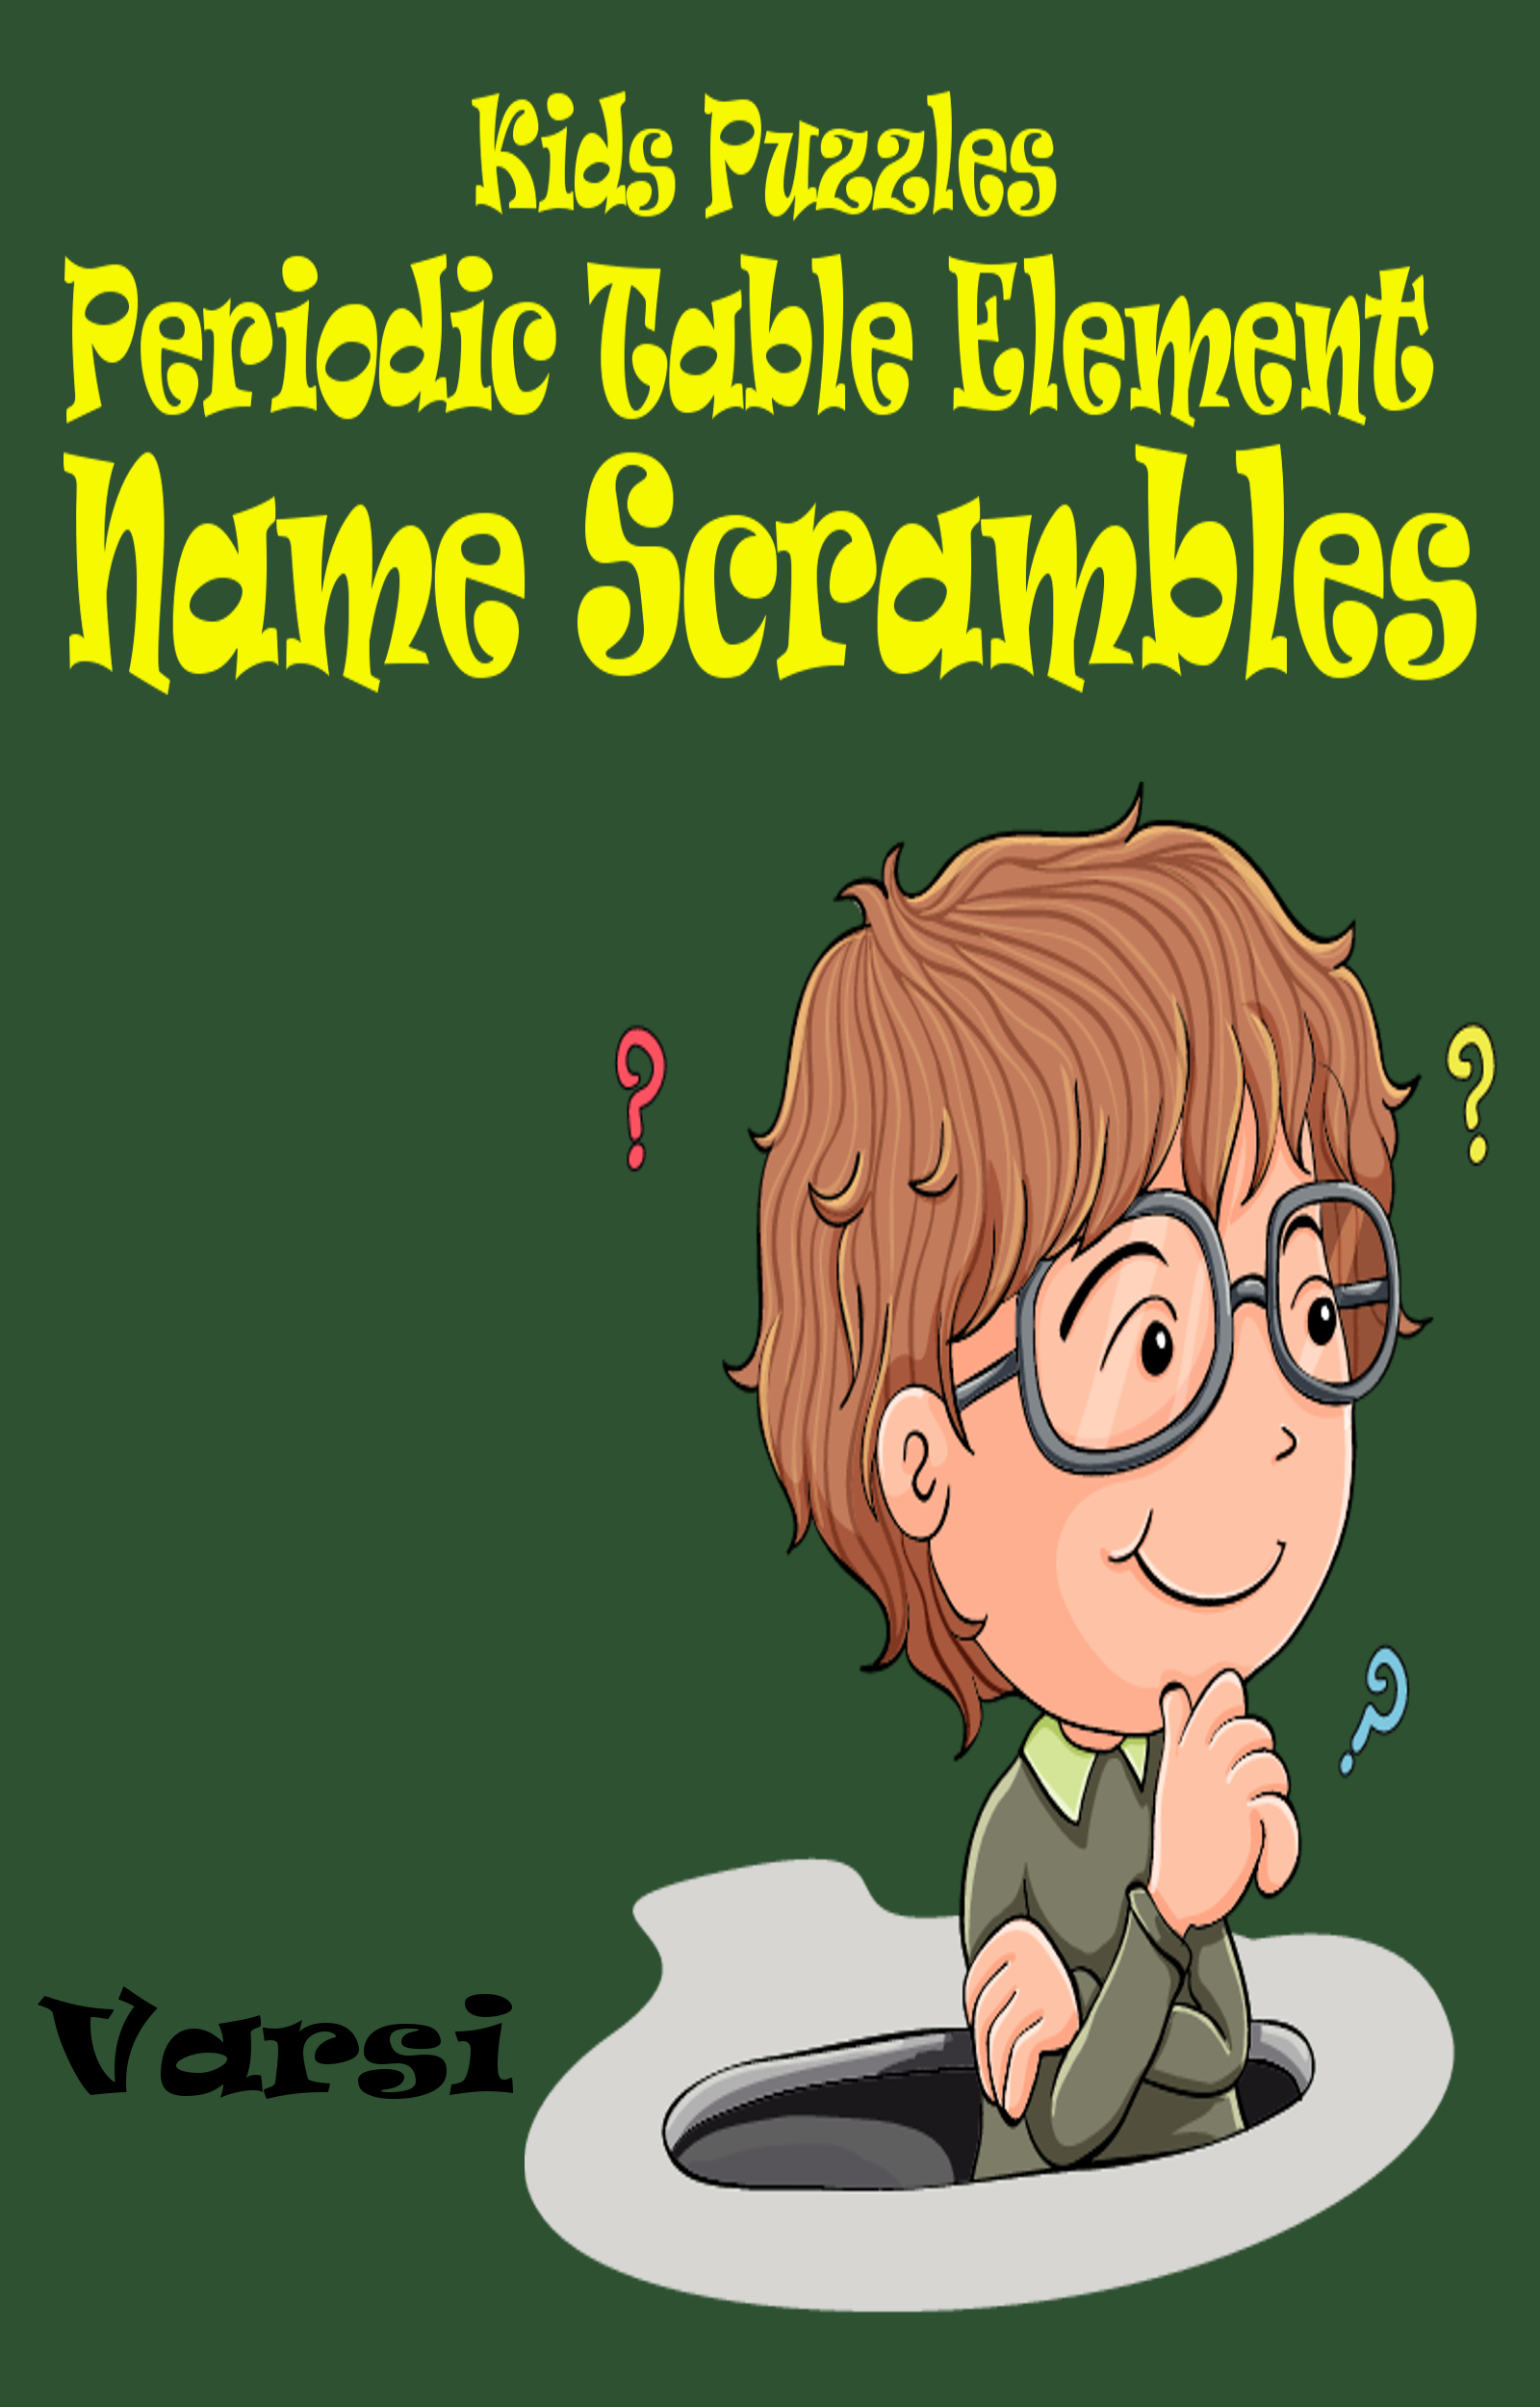 Kids Puzzles Periodic Table Element Name Scrambles By: Varsi